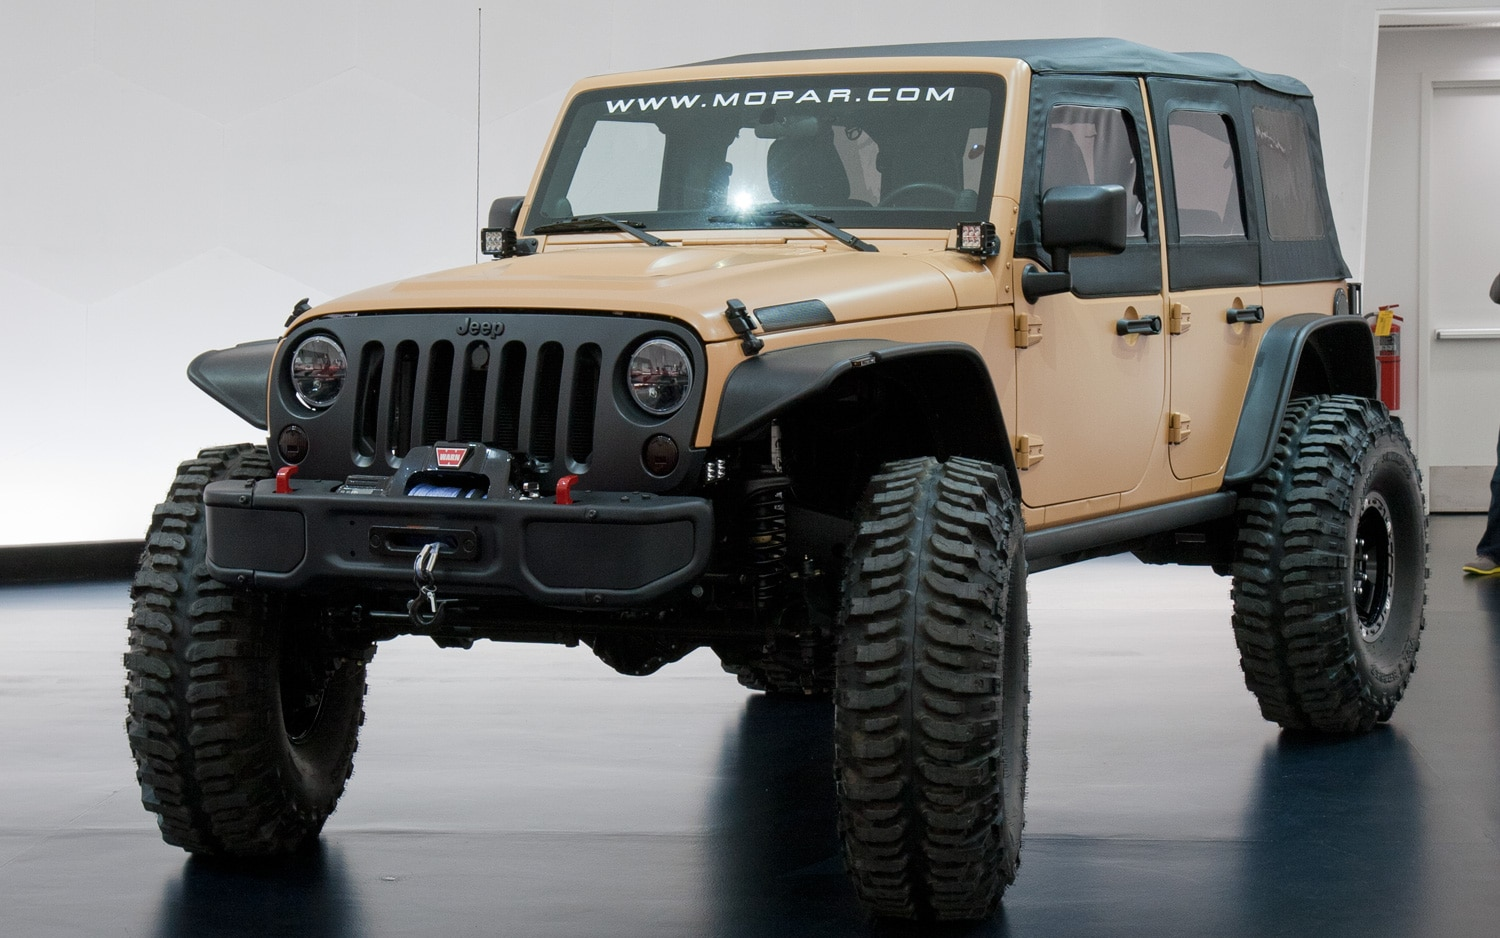 Images of Sand Color Jeep Wrangler - #rock-cafe